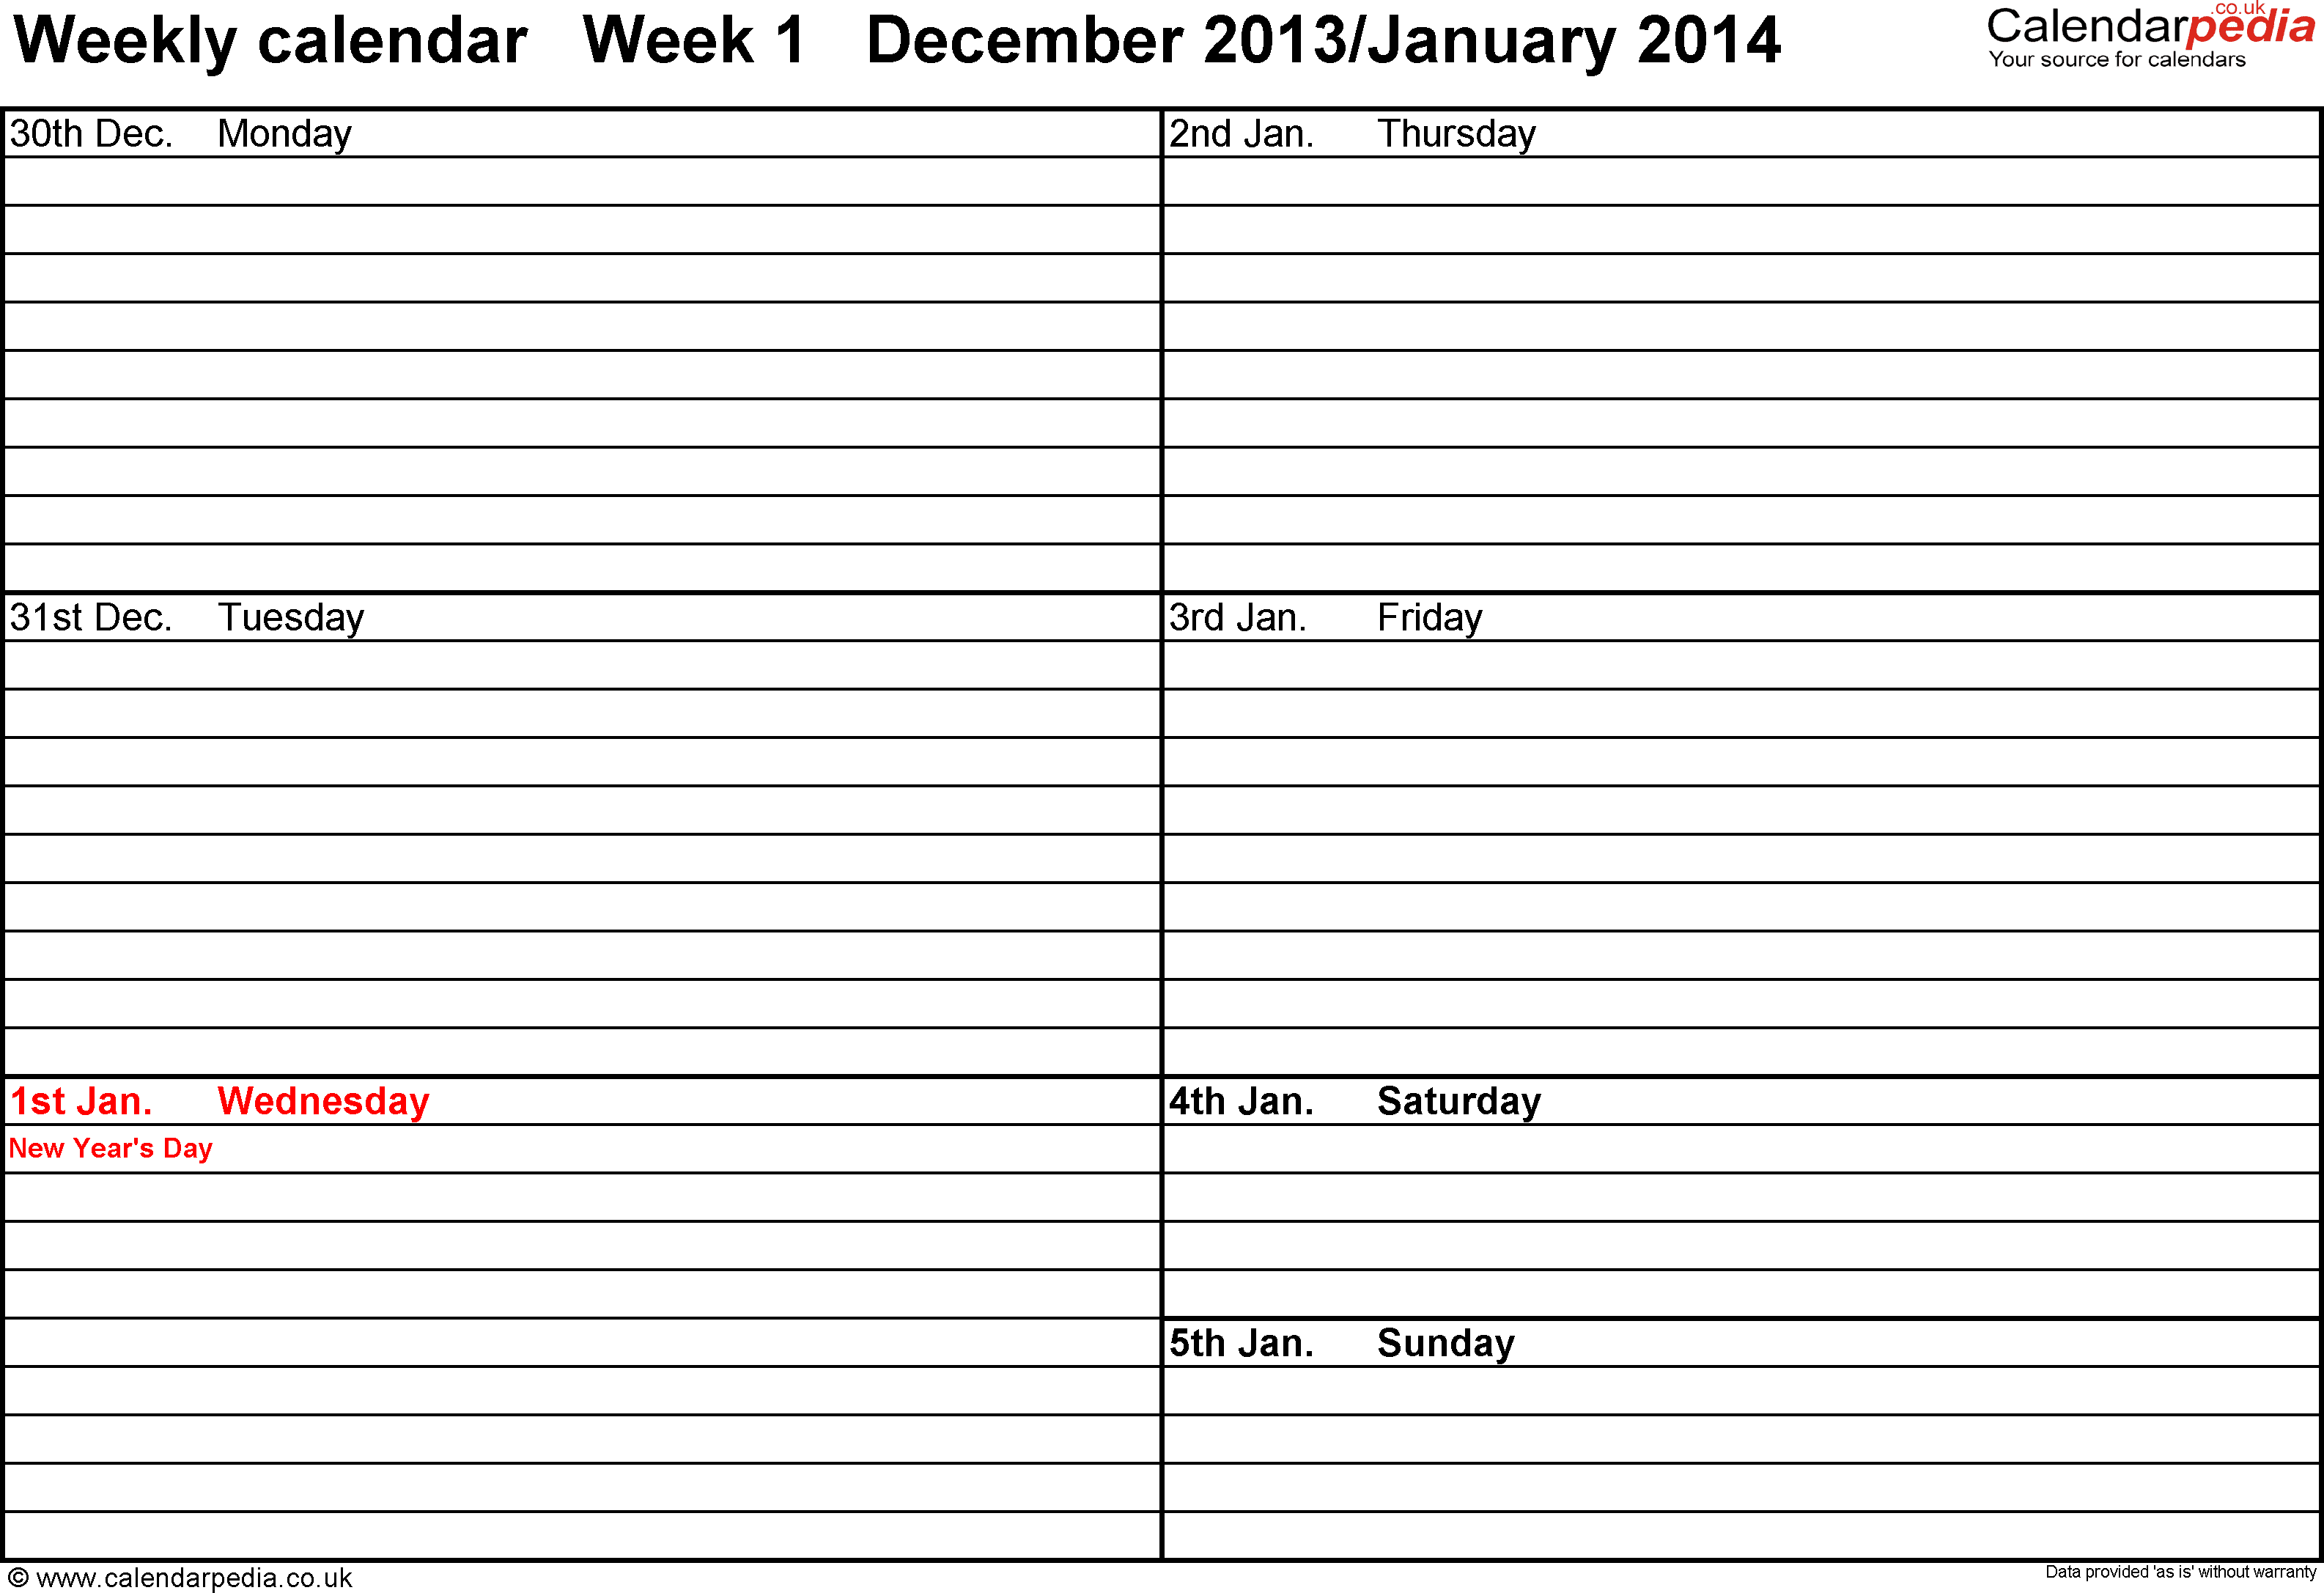 Word Template 3: Weekly Calendar 2014, Landscape Orientation, 53 Pages (1  Calendar  Days Of The Week Calendar Template